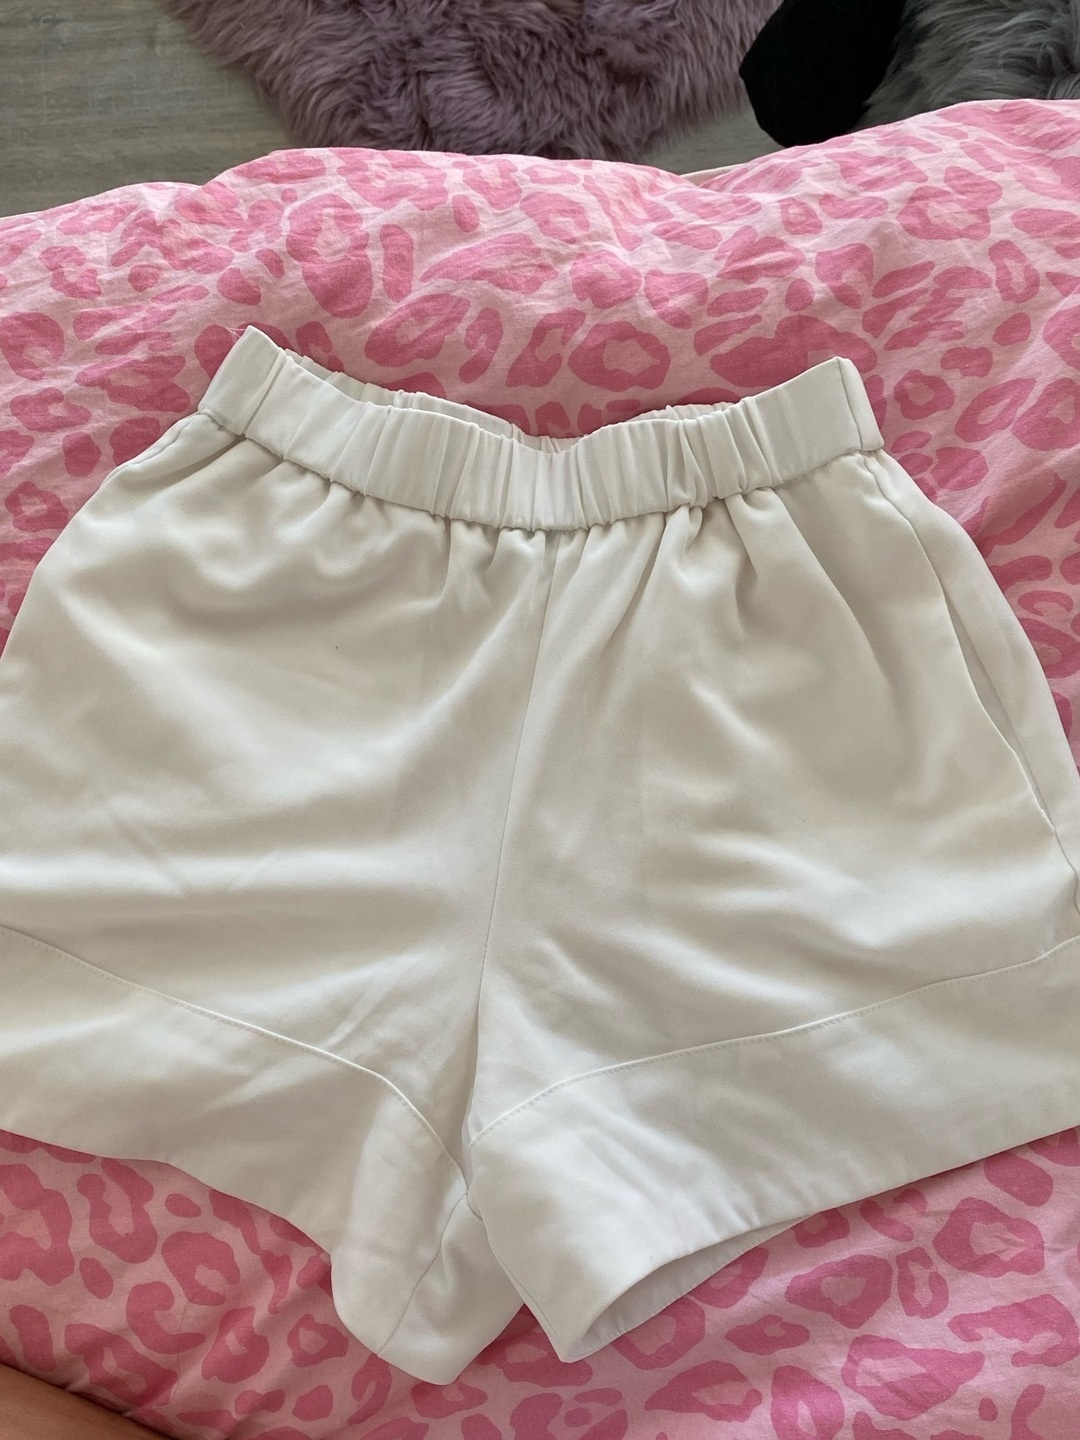 Women's shorts - GINA TRICOT photo 1